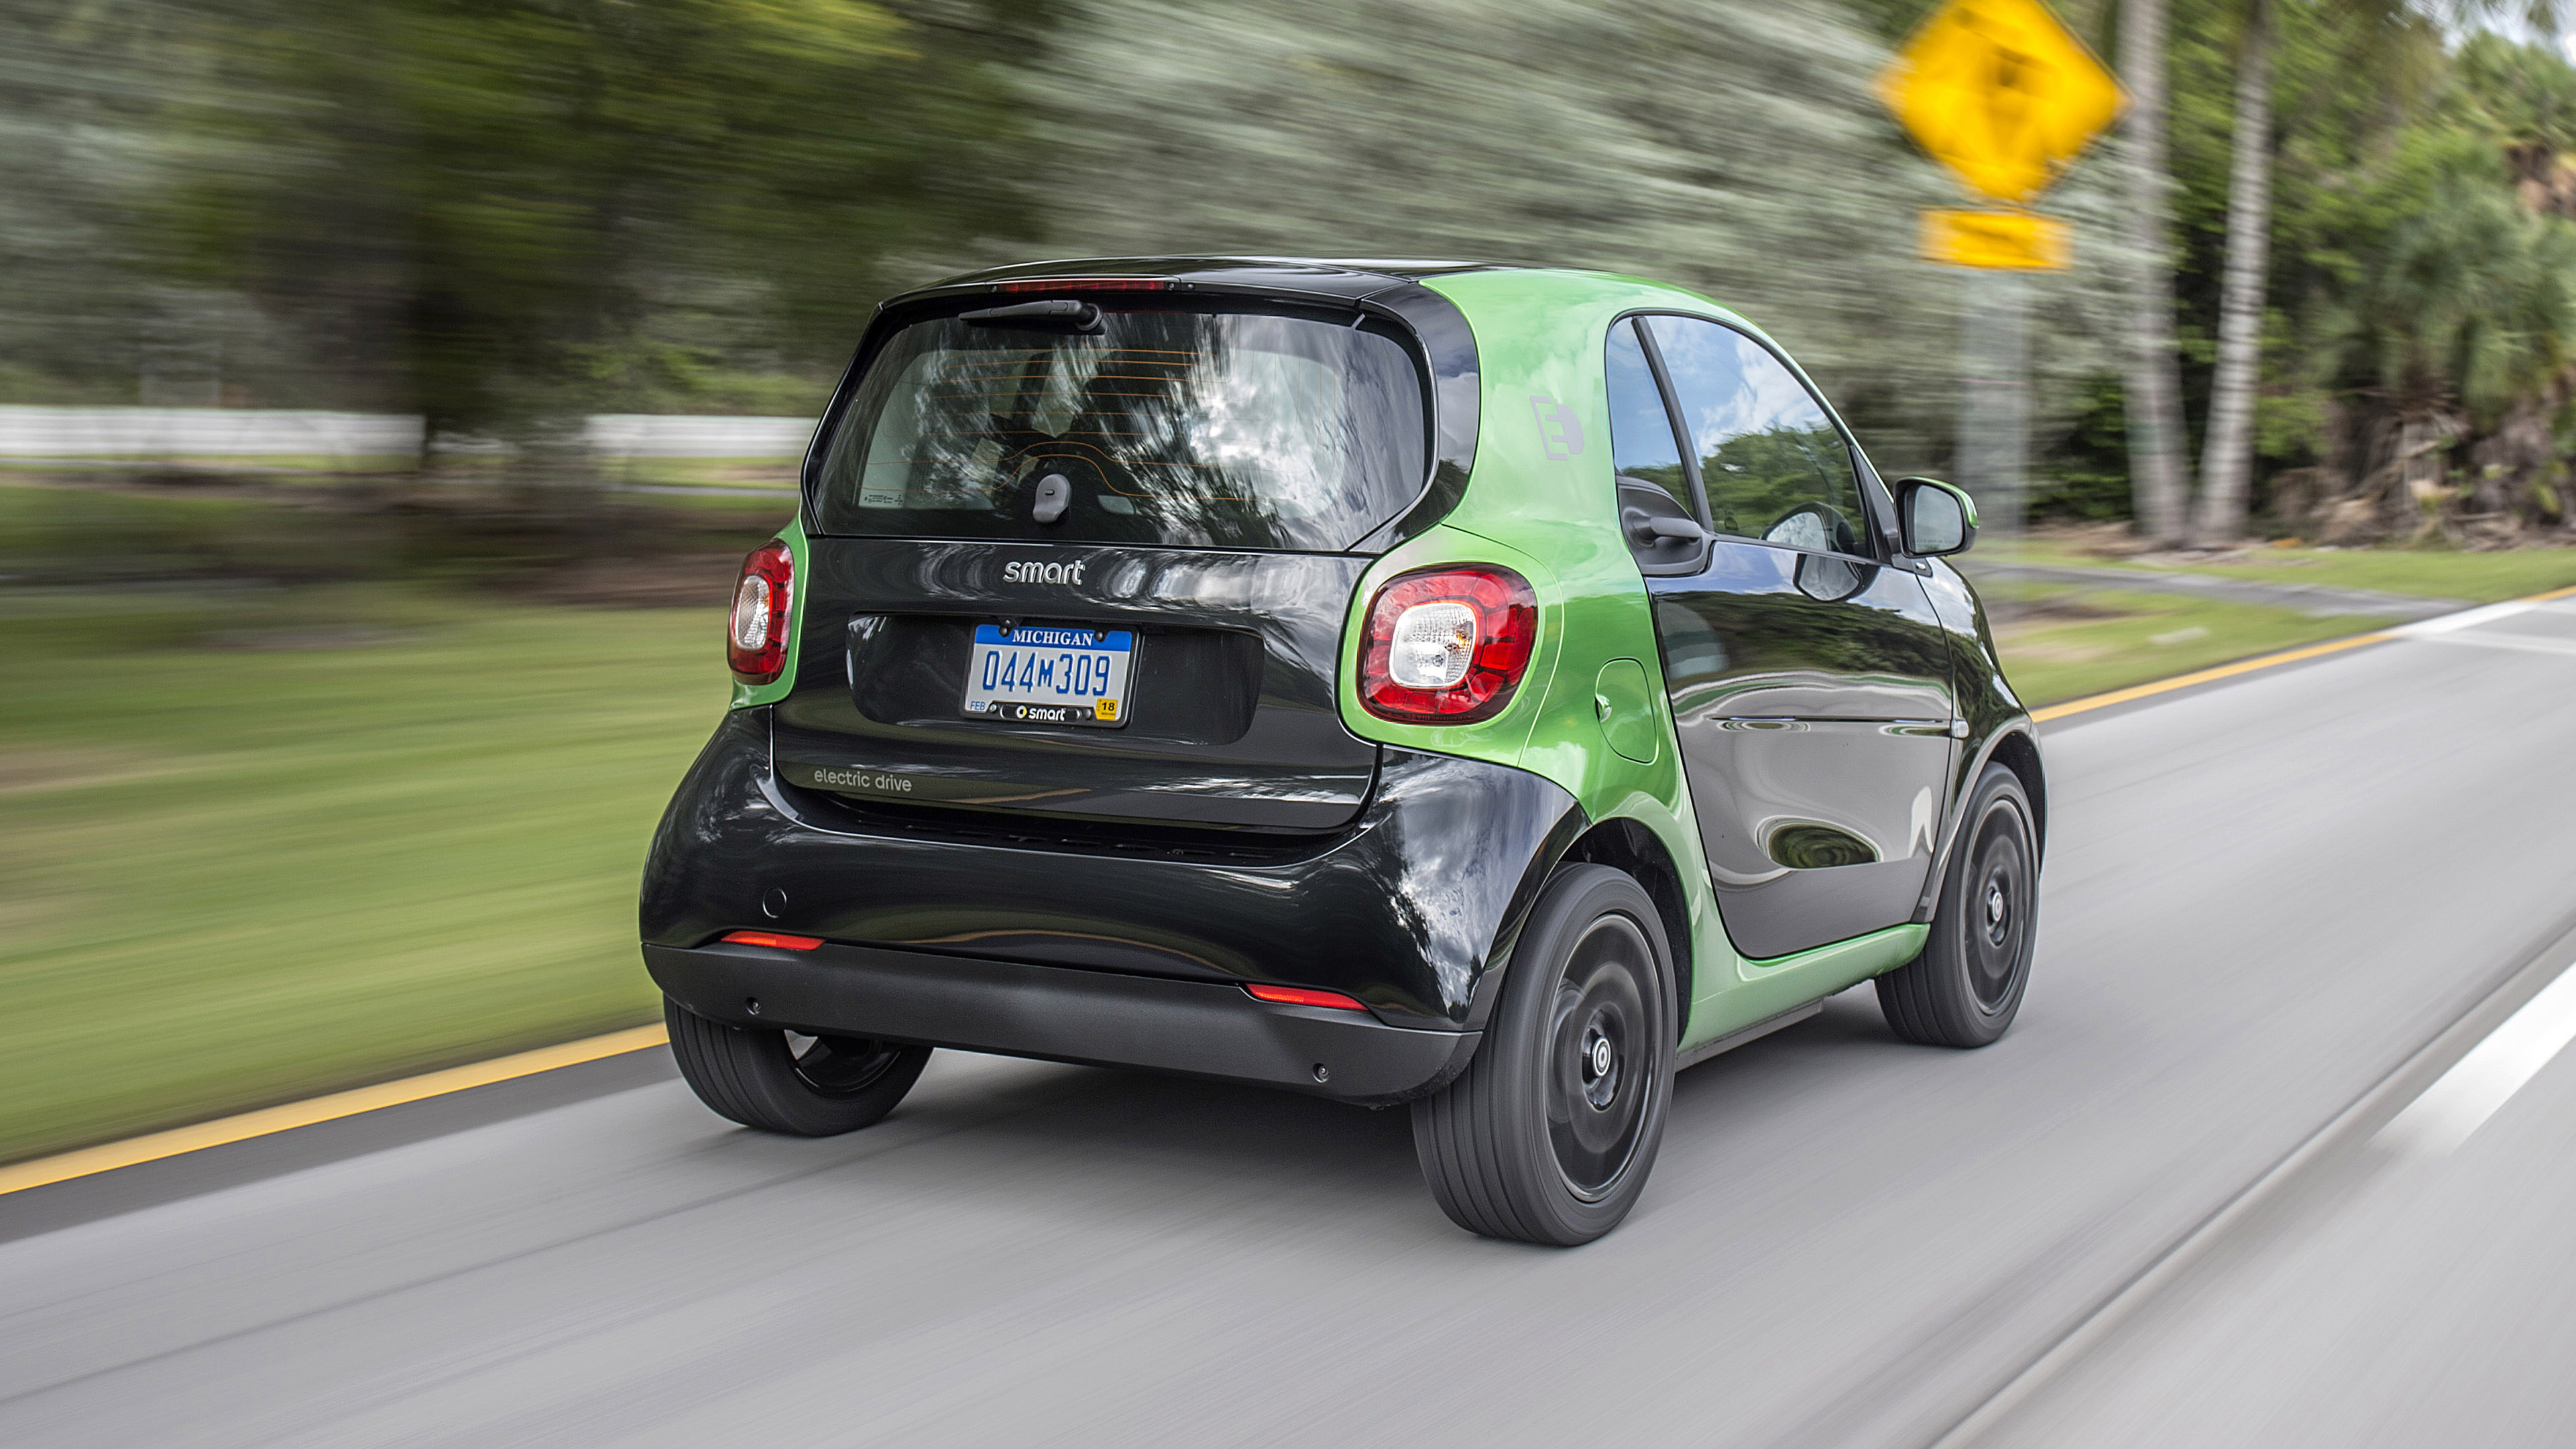 smart fortwo electric drive review ev city car takes on miami top gear. Black Bedroom Furniture Sets. Home Design Ideas